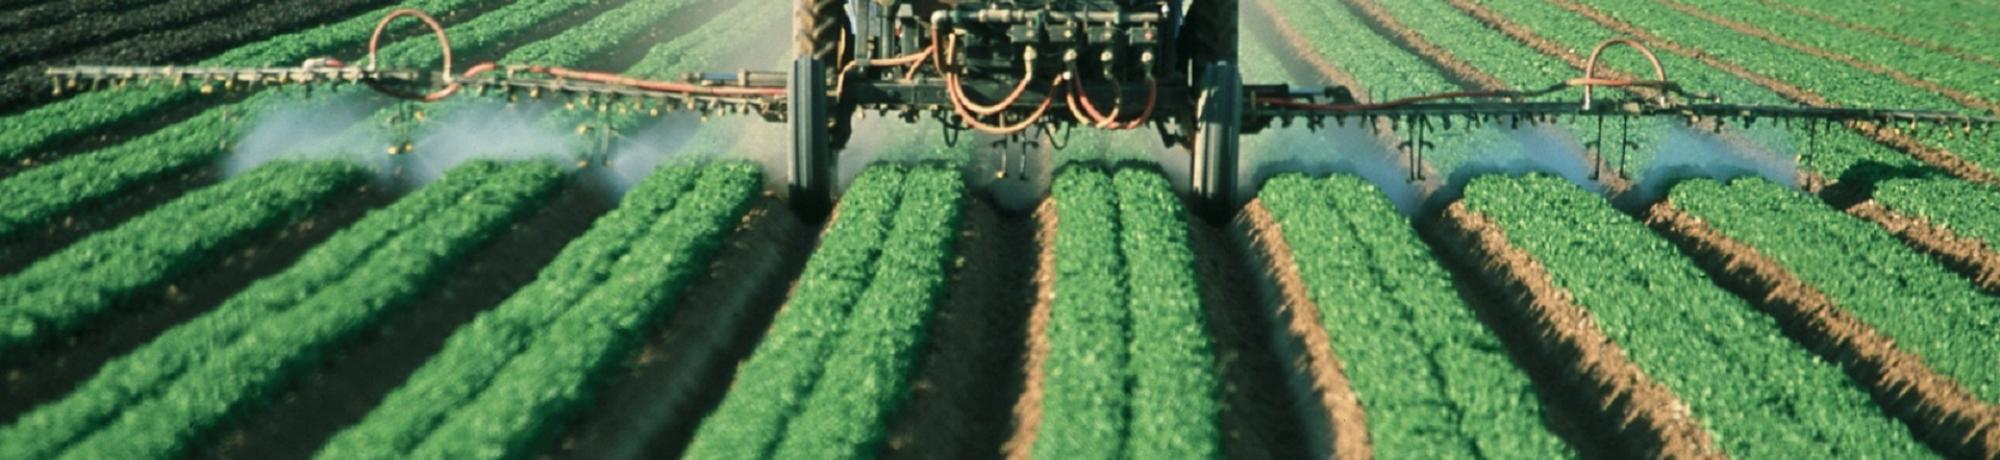 agricultural equipment sprays pesticides in the field